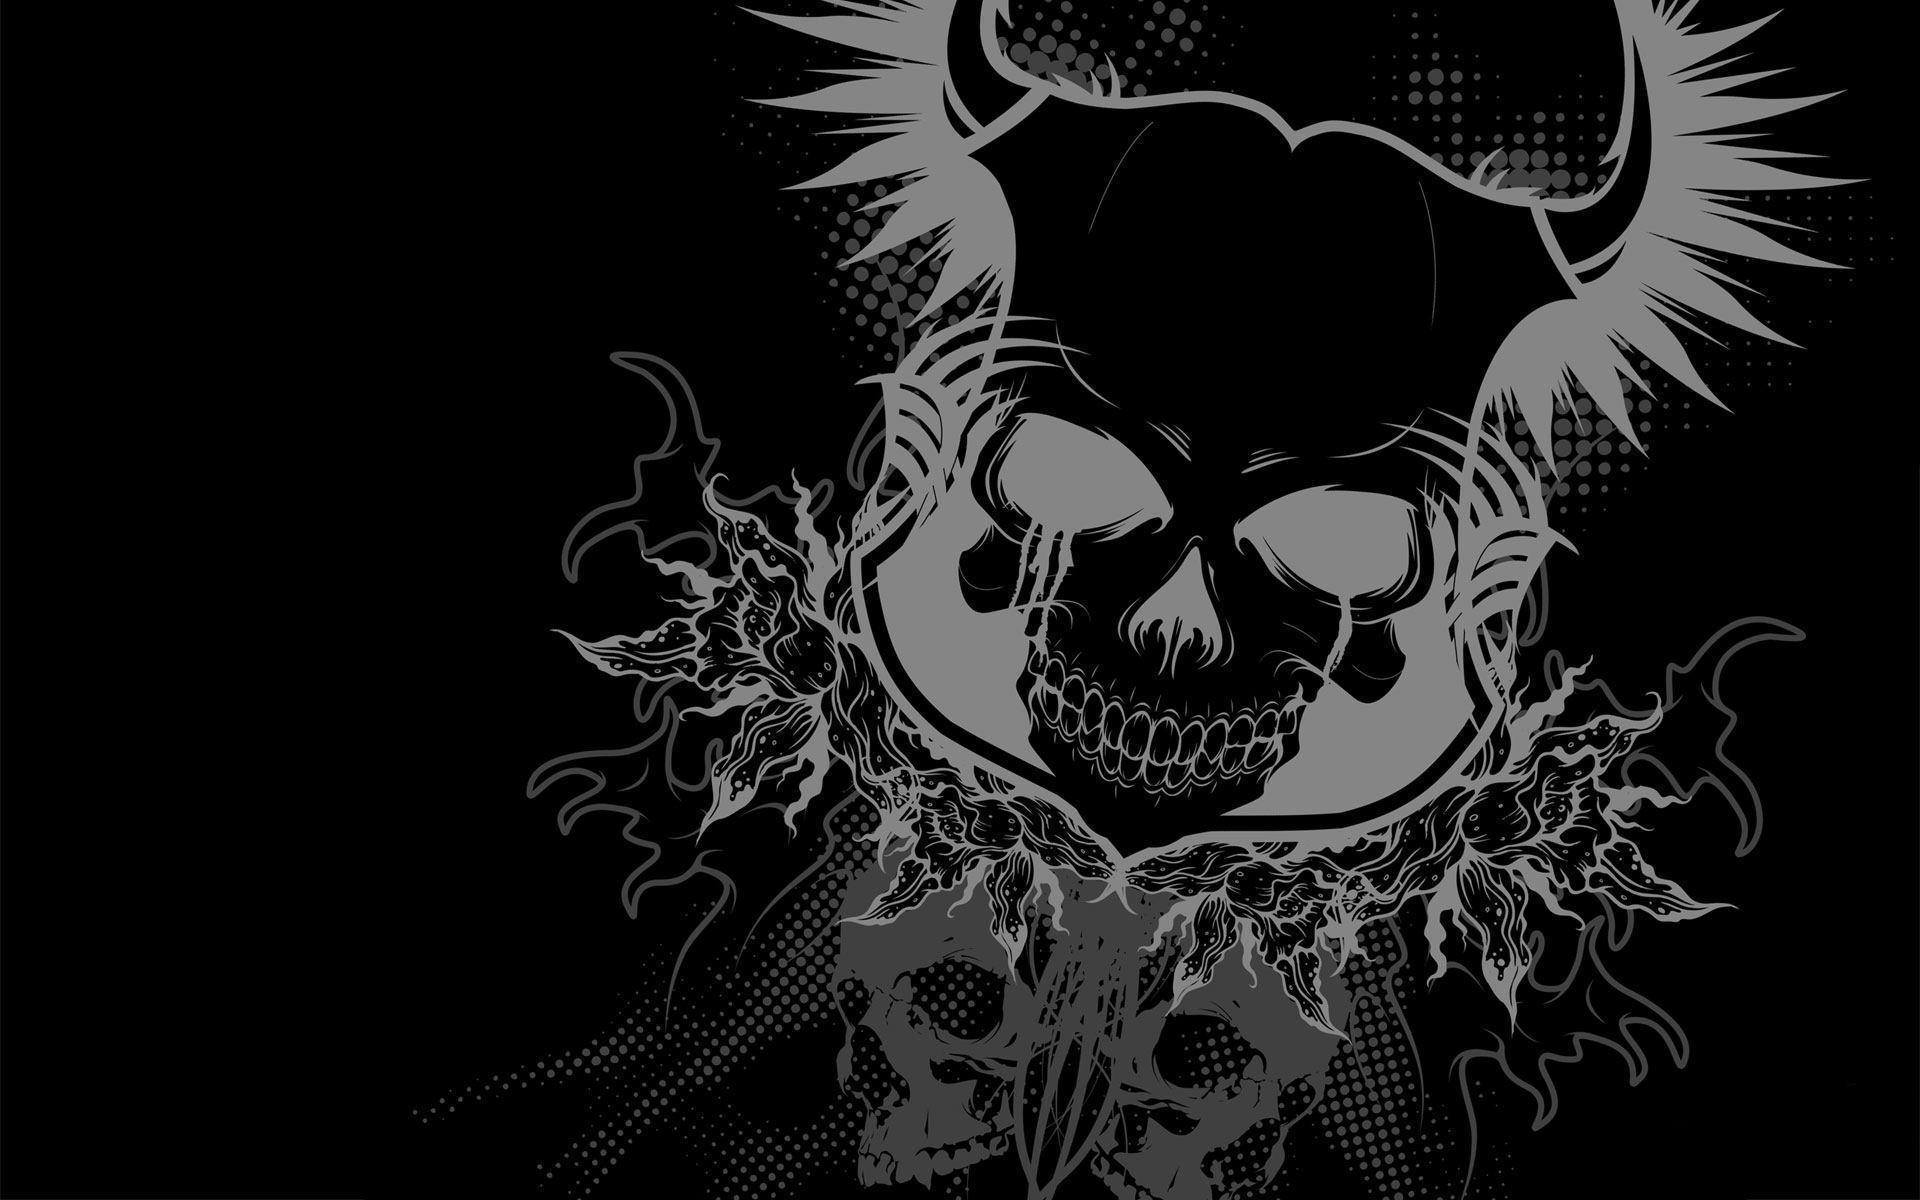 cool rock skull live wallpaper - photo #29